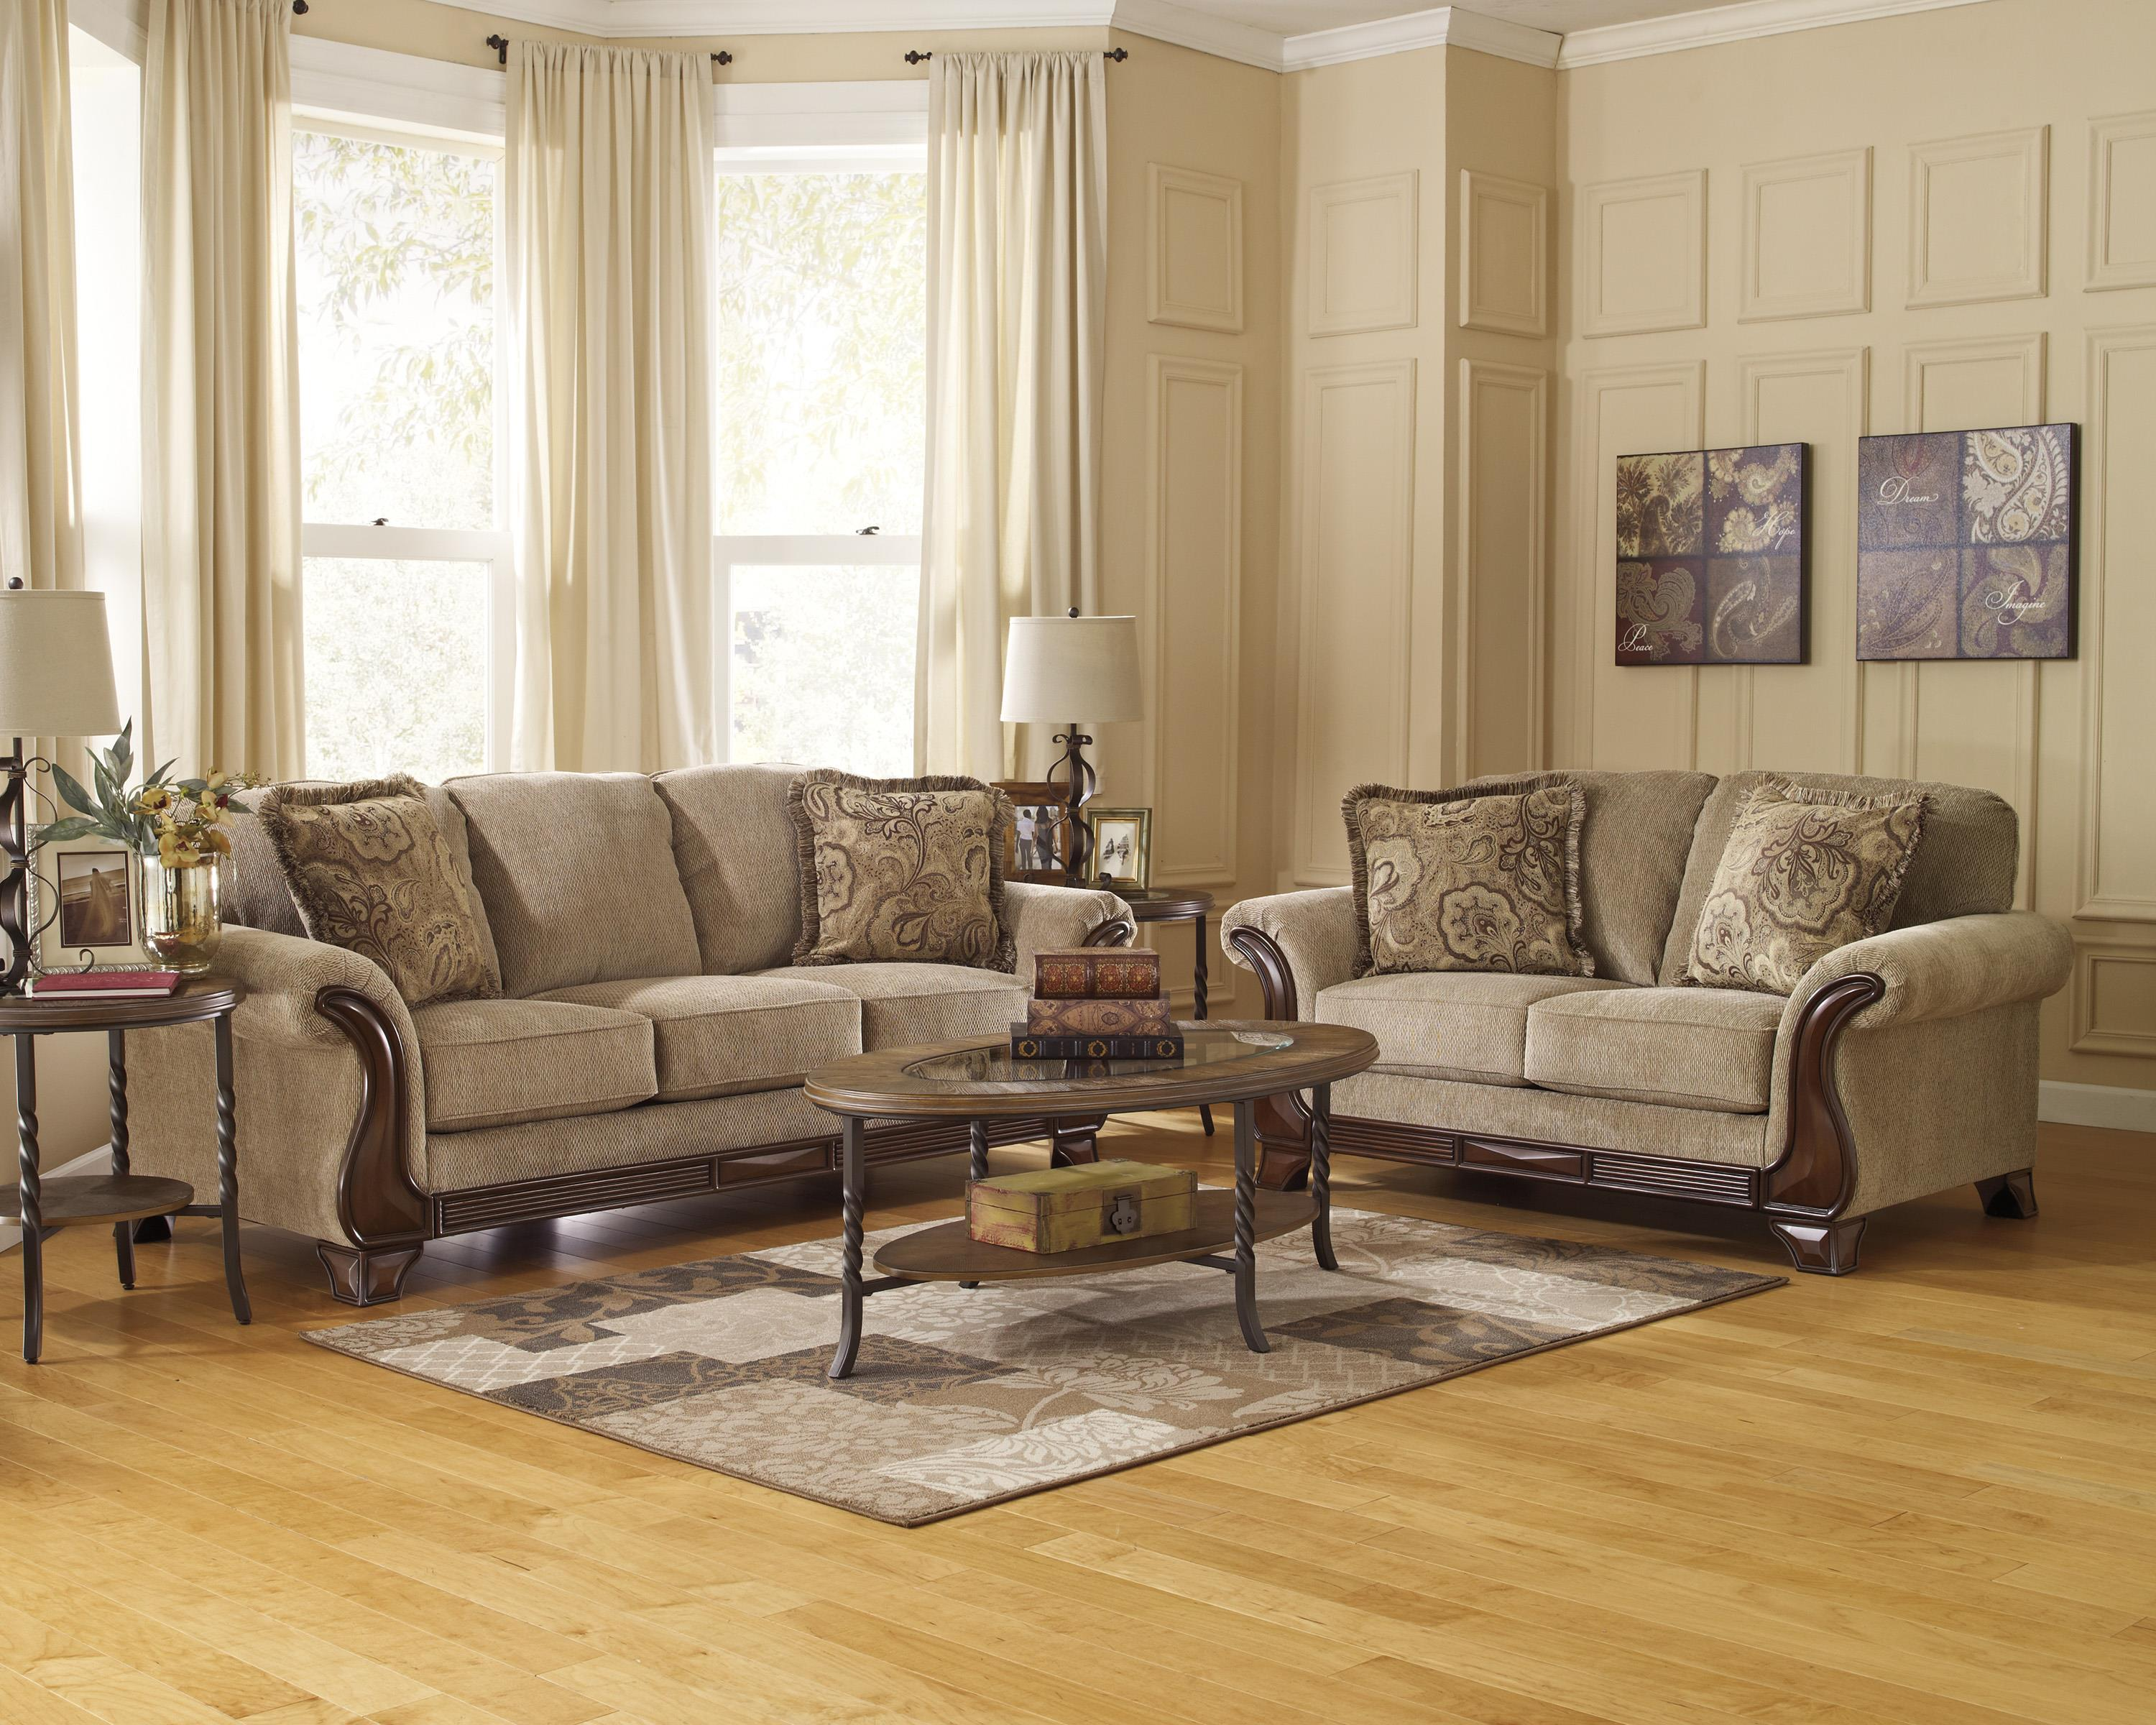 Lanett Stationary Living Room Group by Signature Design by Ashley at Suburban Furniture